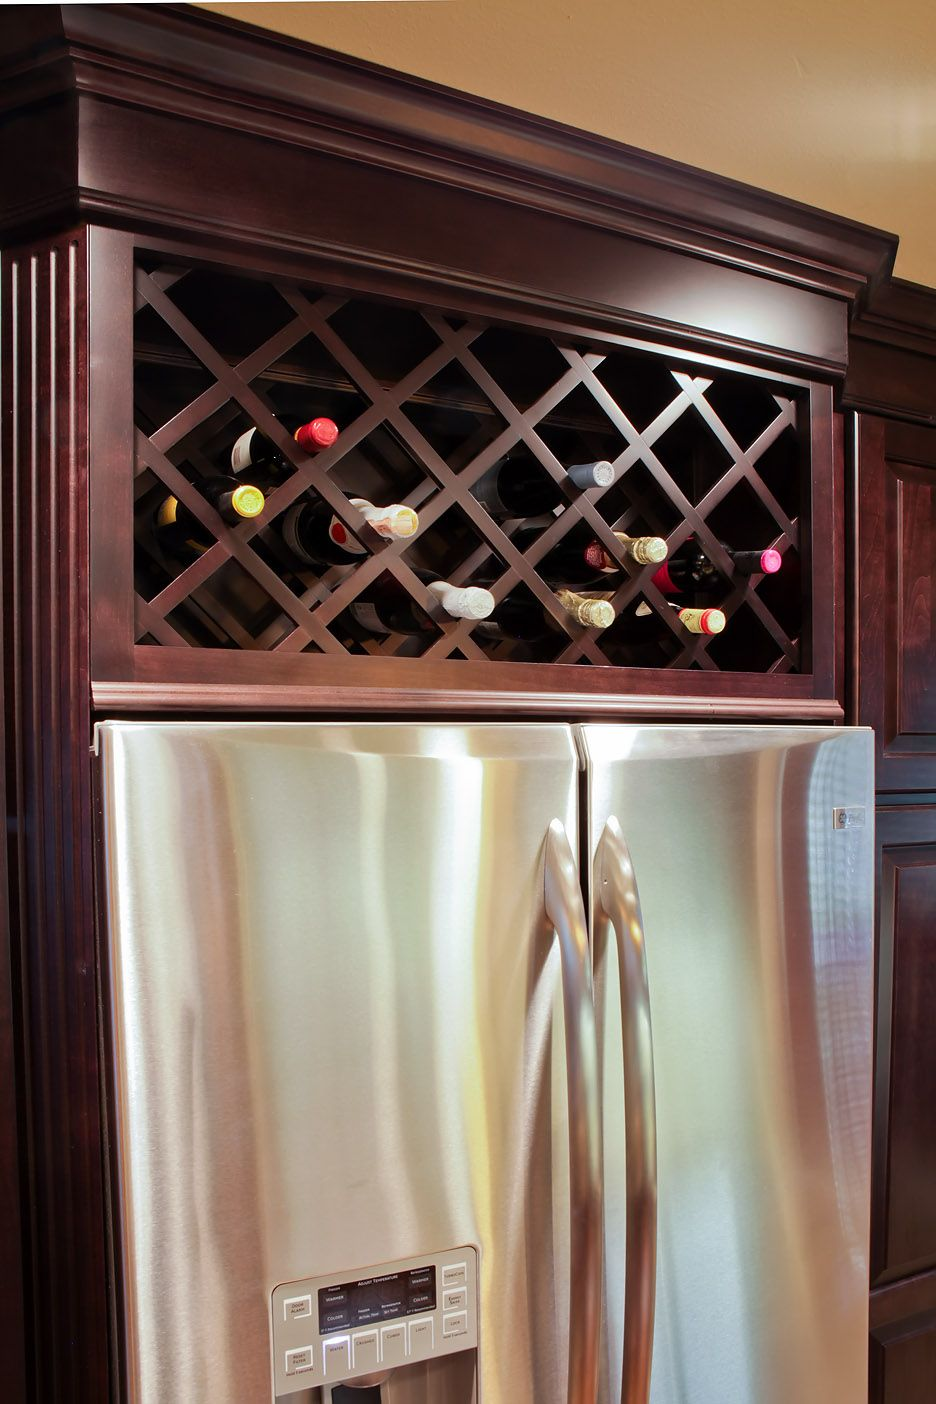 Gallery Red River Remodelers Built In Wine Rack Wine Rack Design Kitchen Cabinet Wine Rack